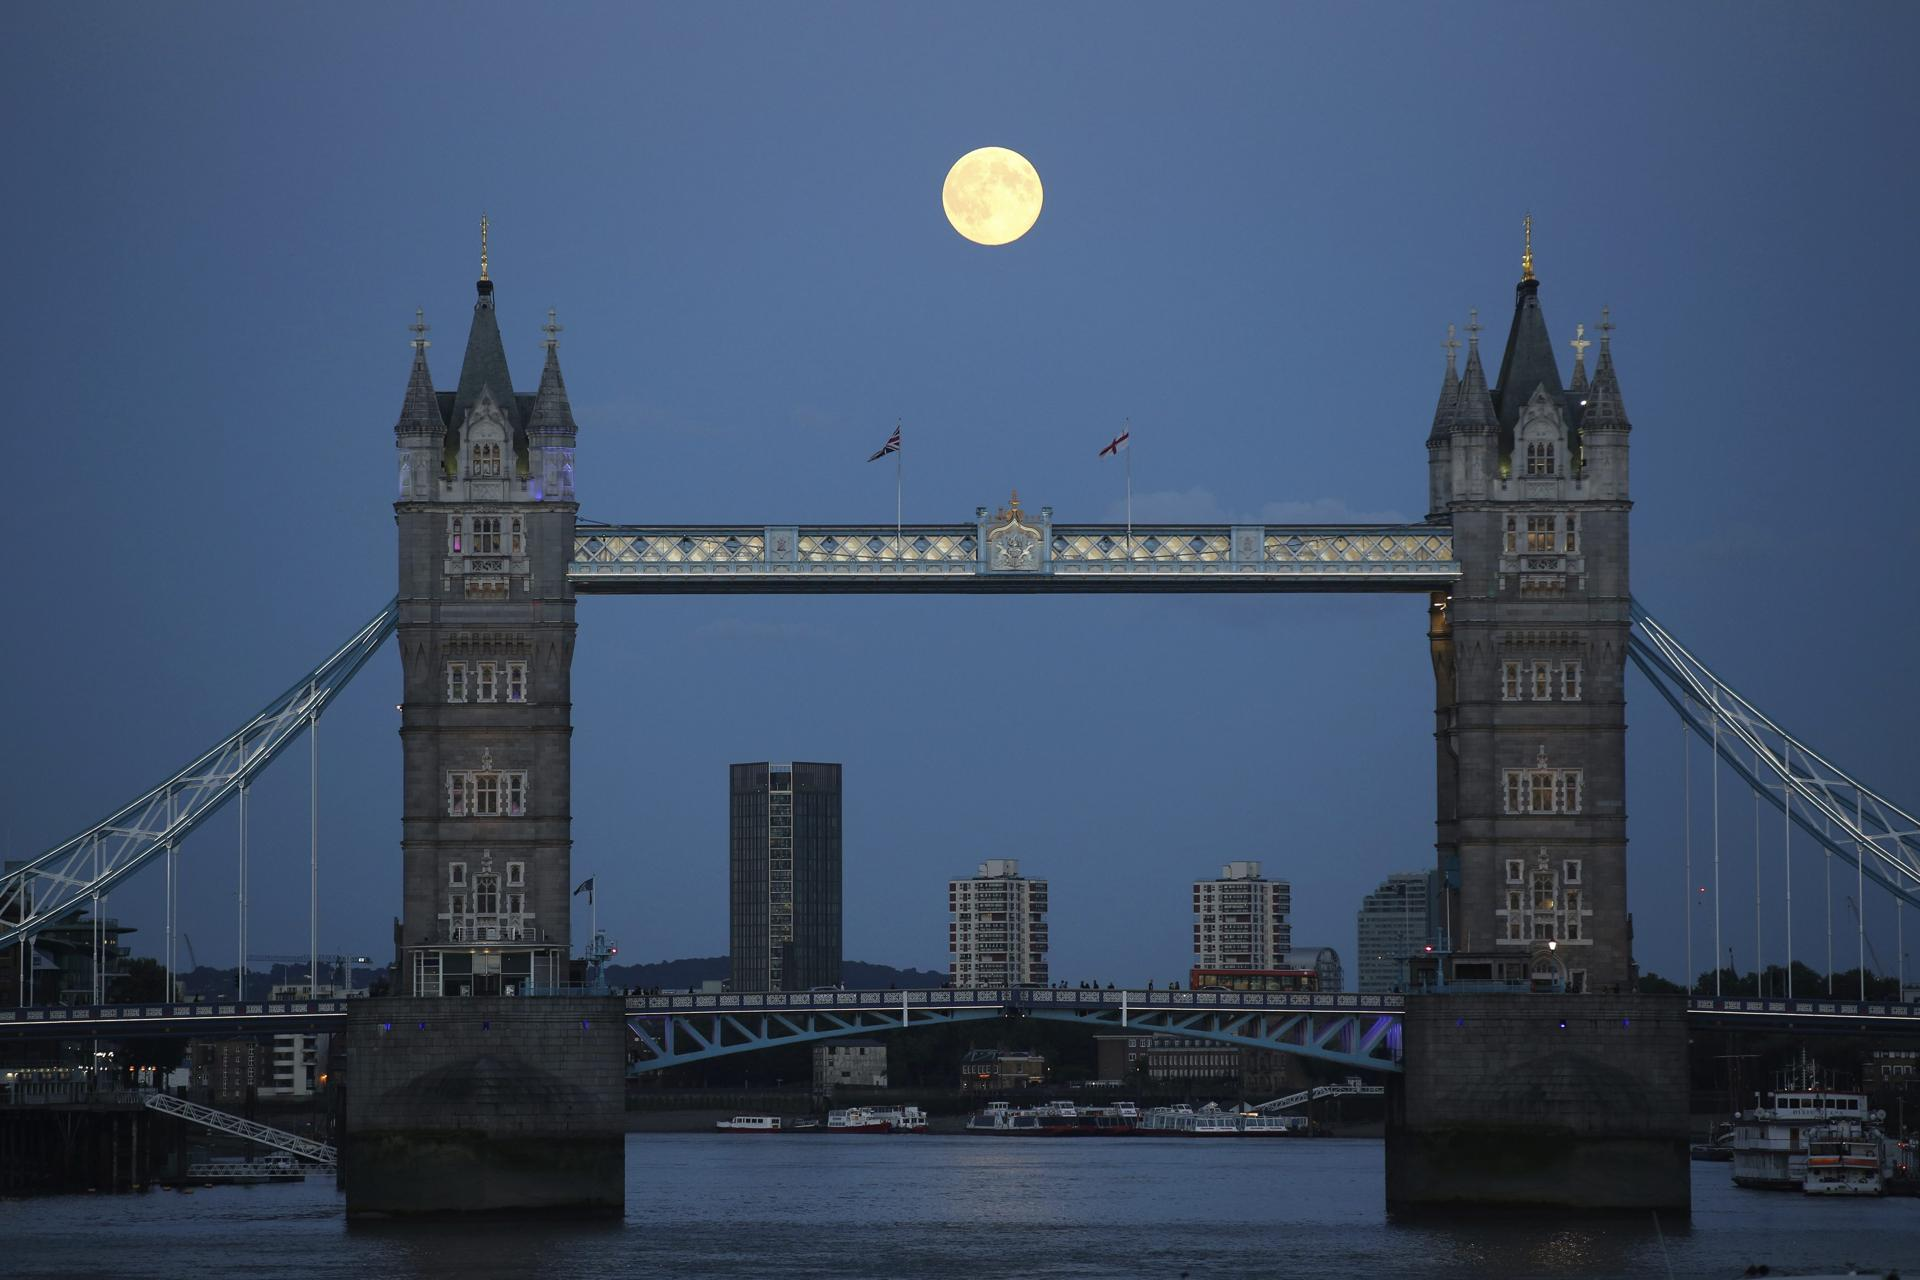 A supermoon rose over Tower Bridge in London.